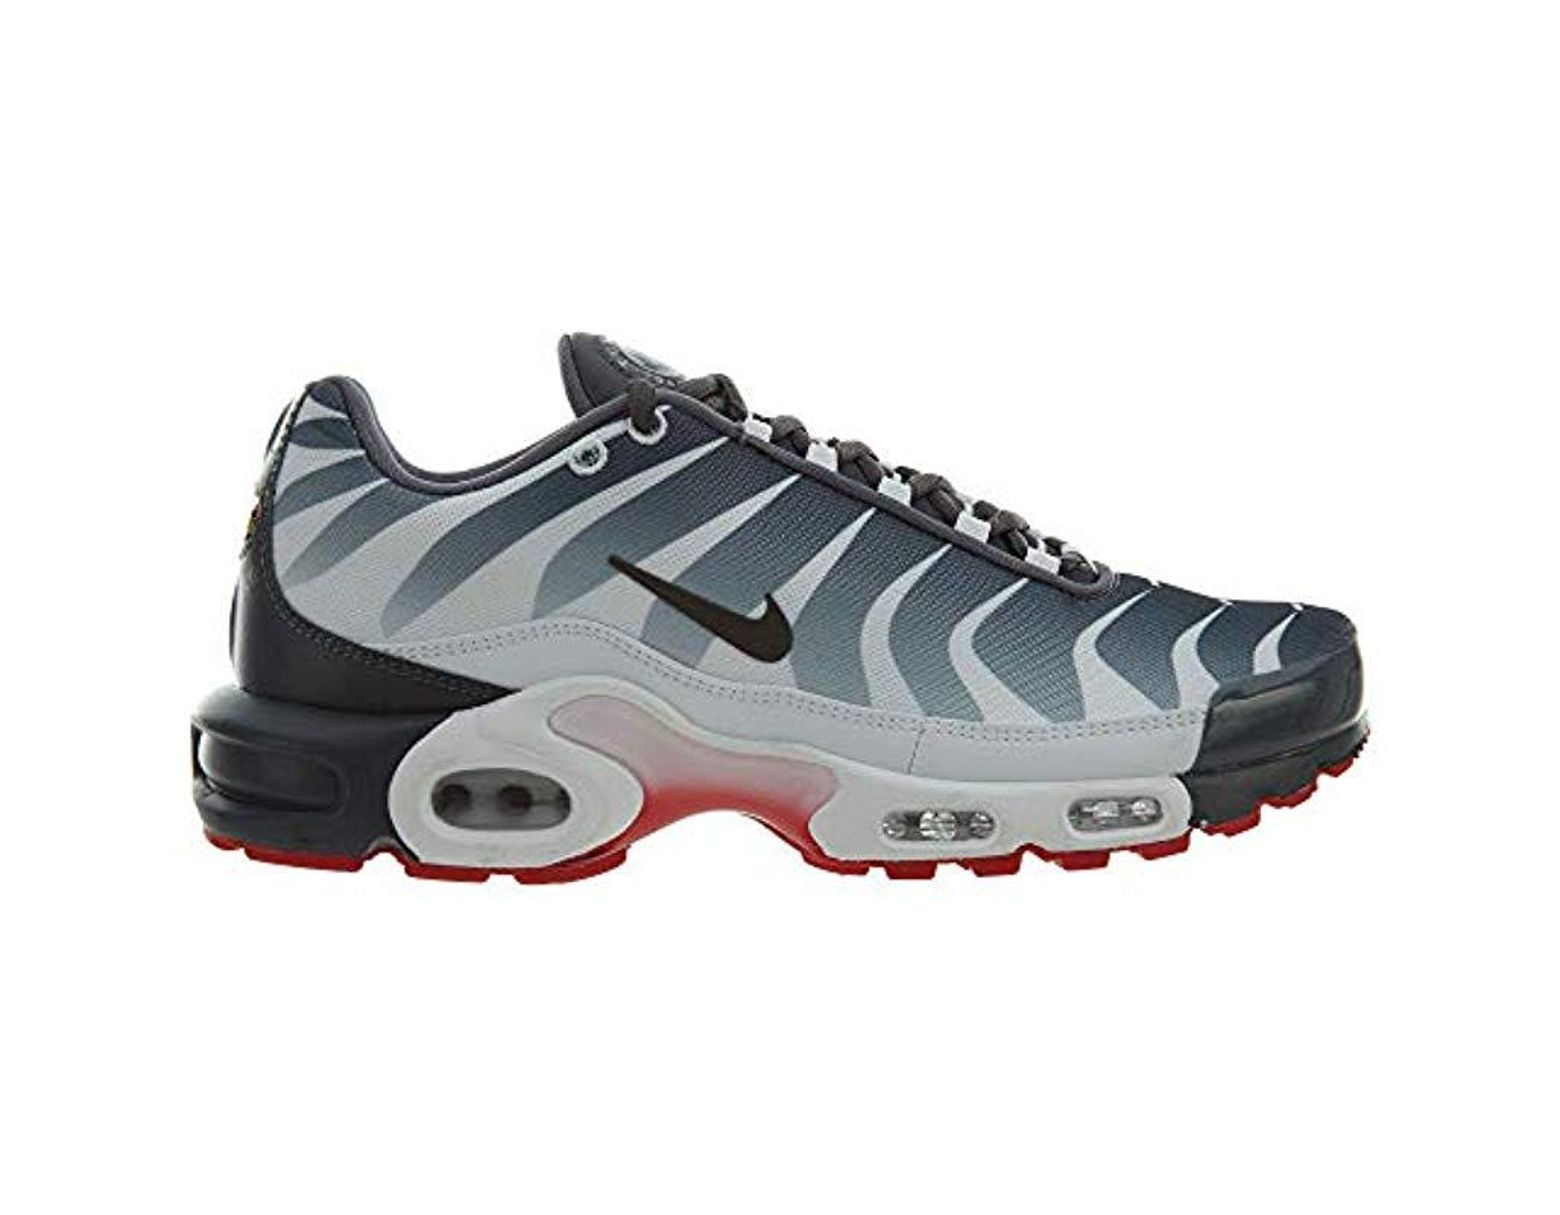 Nike Air Max Plus Tn Tuned Se After The Bite Trainers in